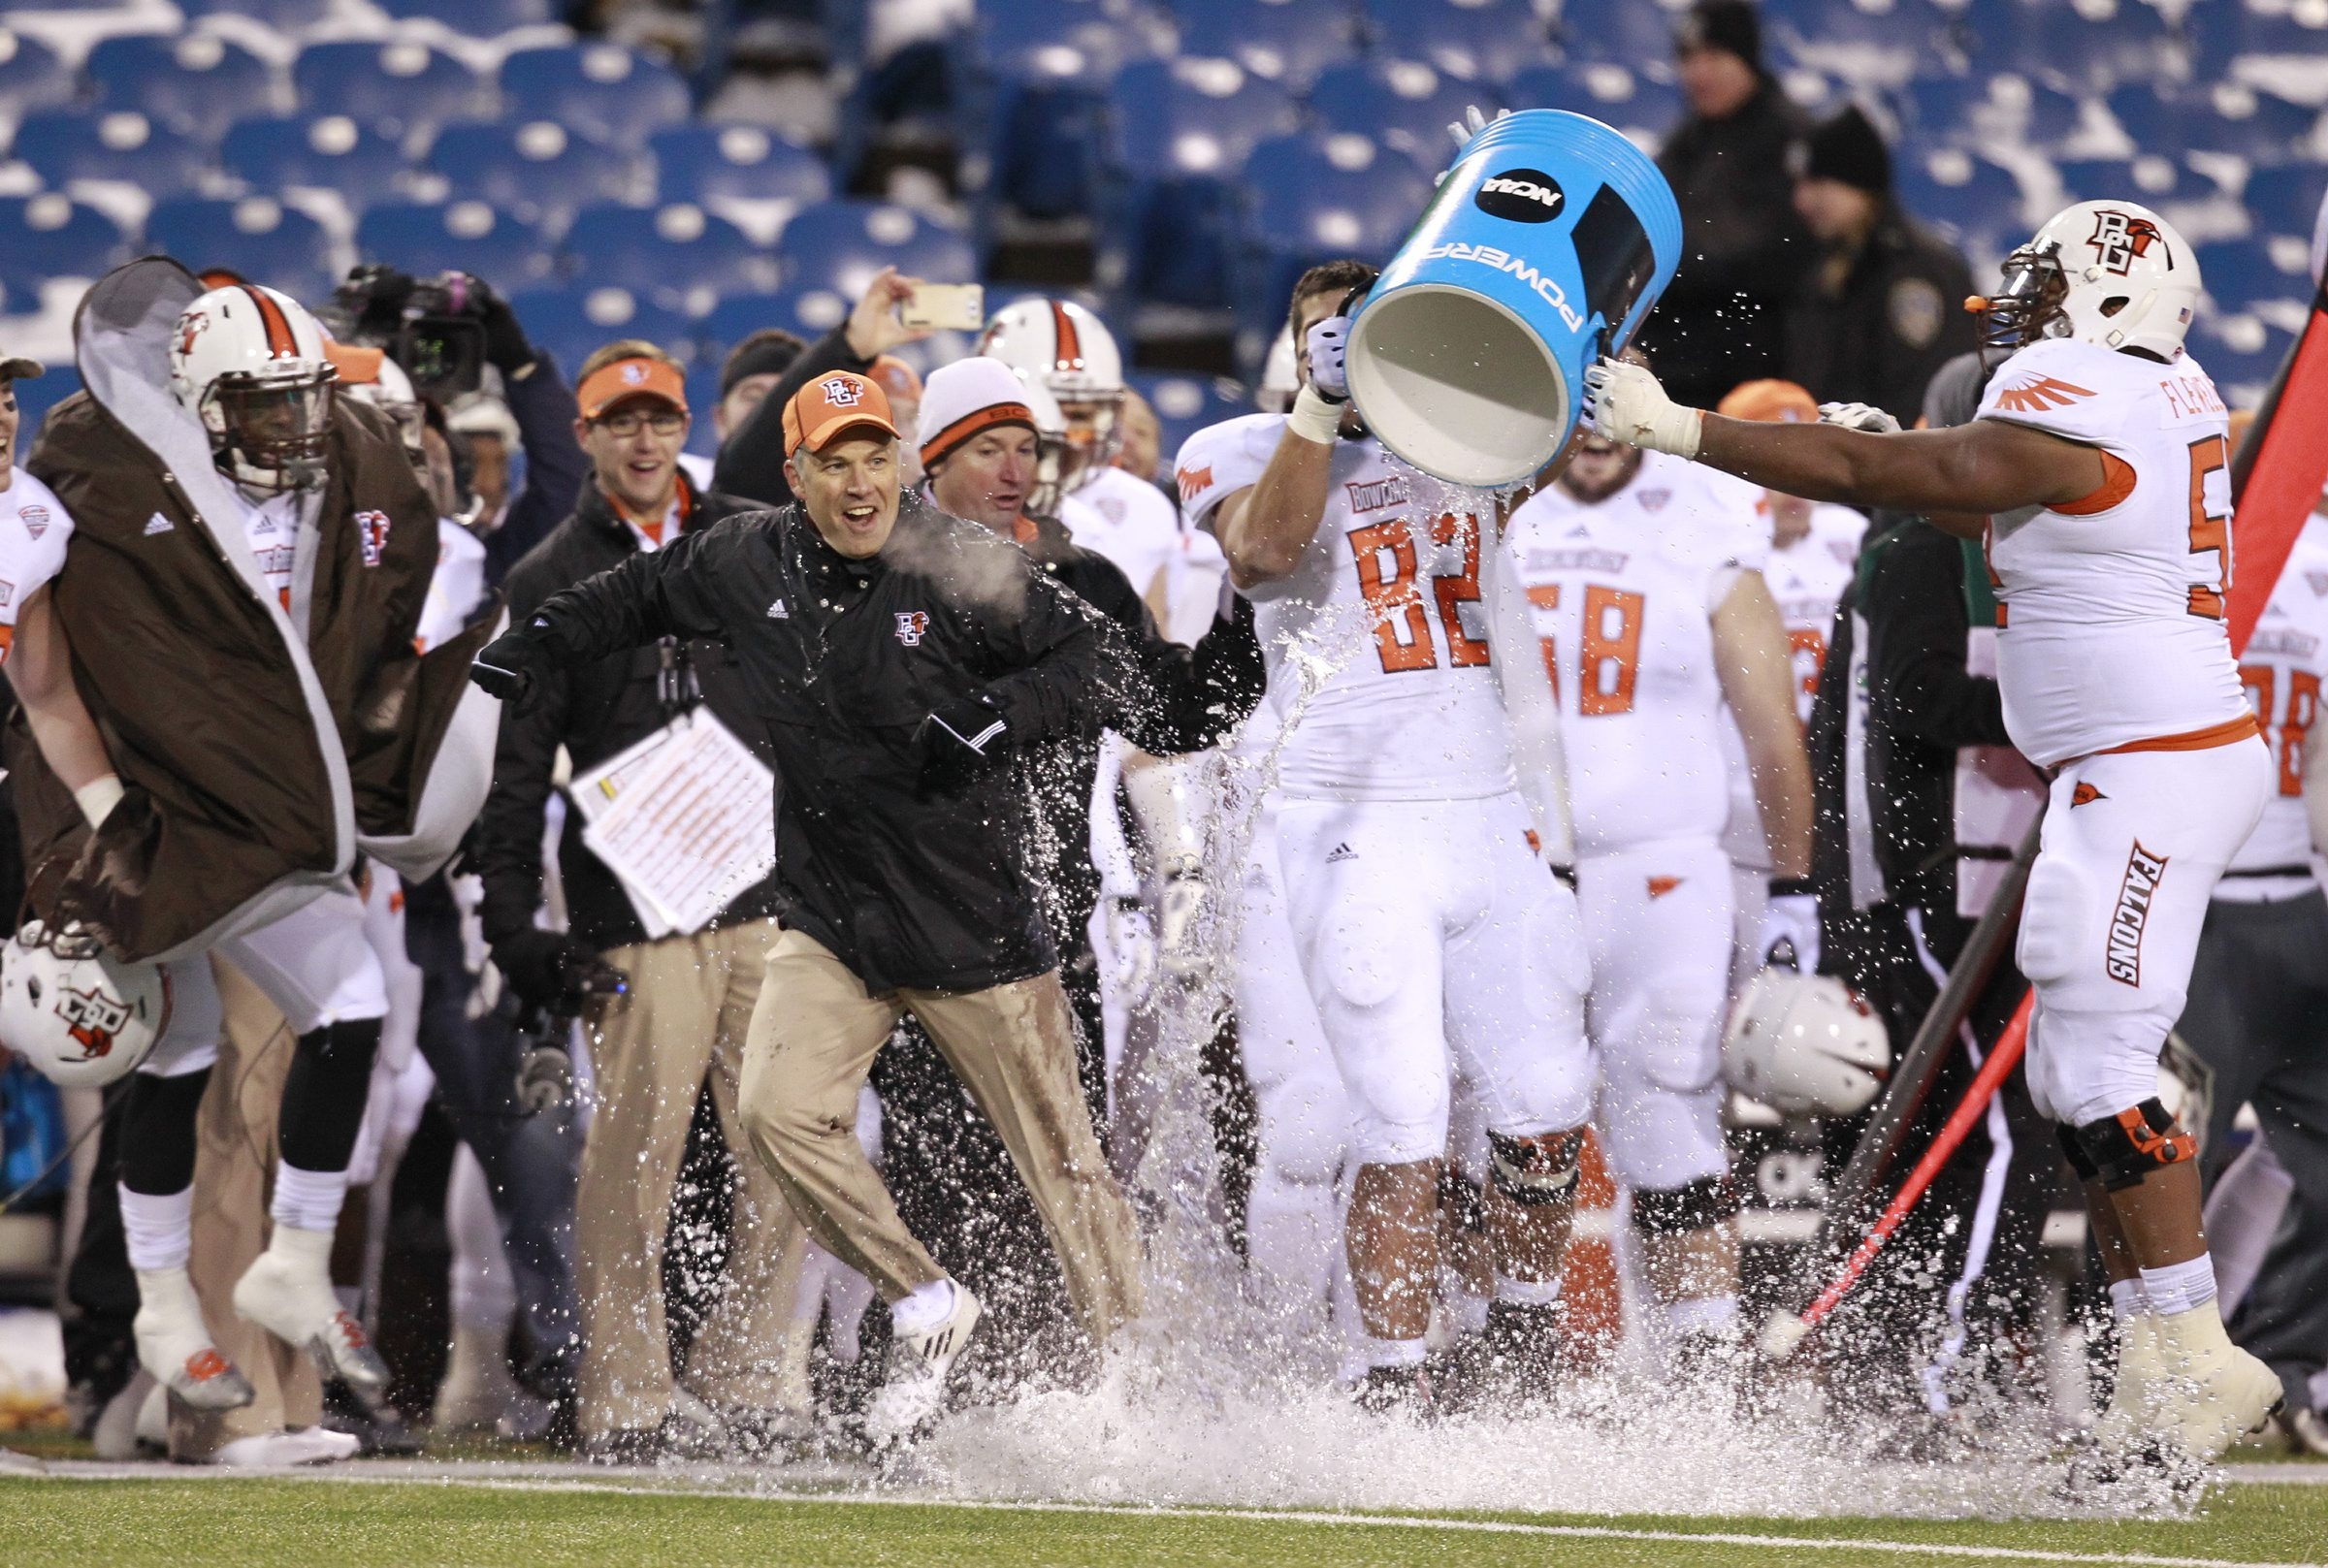 Bowling Green coach and Lewiston-Porter grad Dave Clawson gets the water bucket treatment after the Falcons' 24-7 victory Friday.